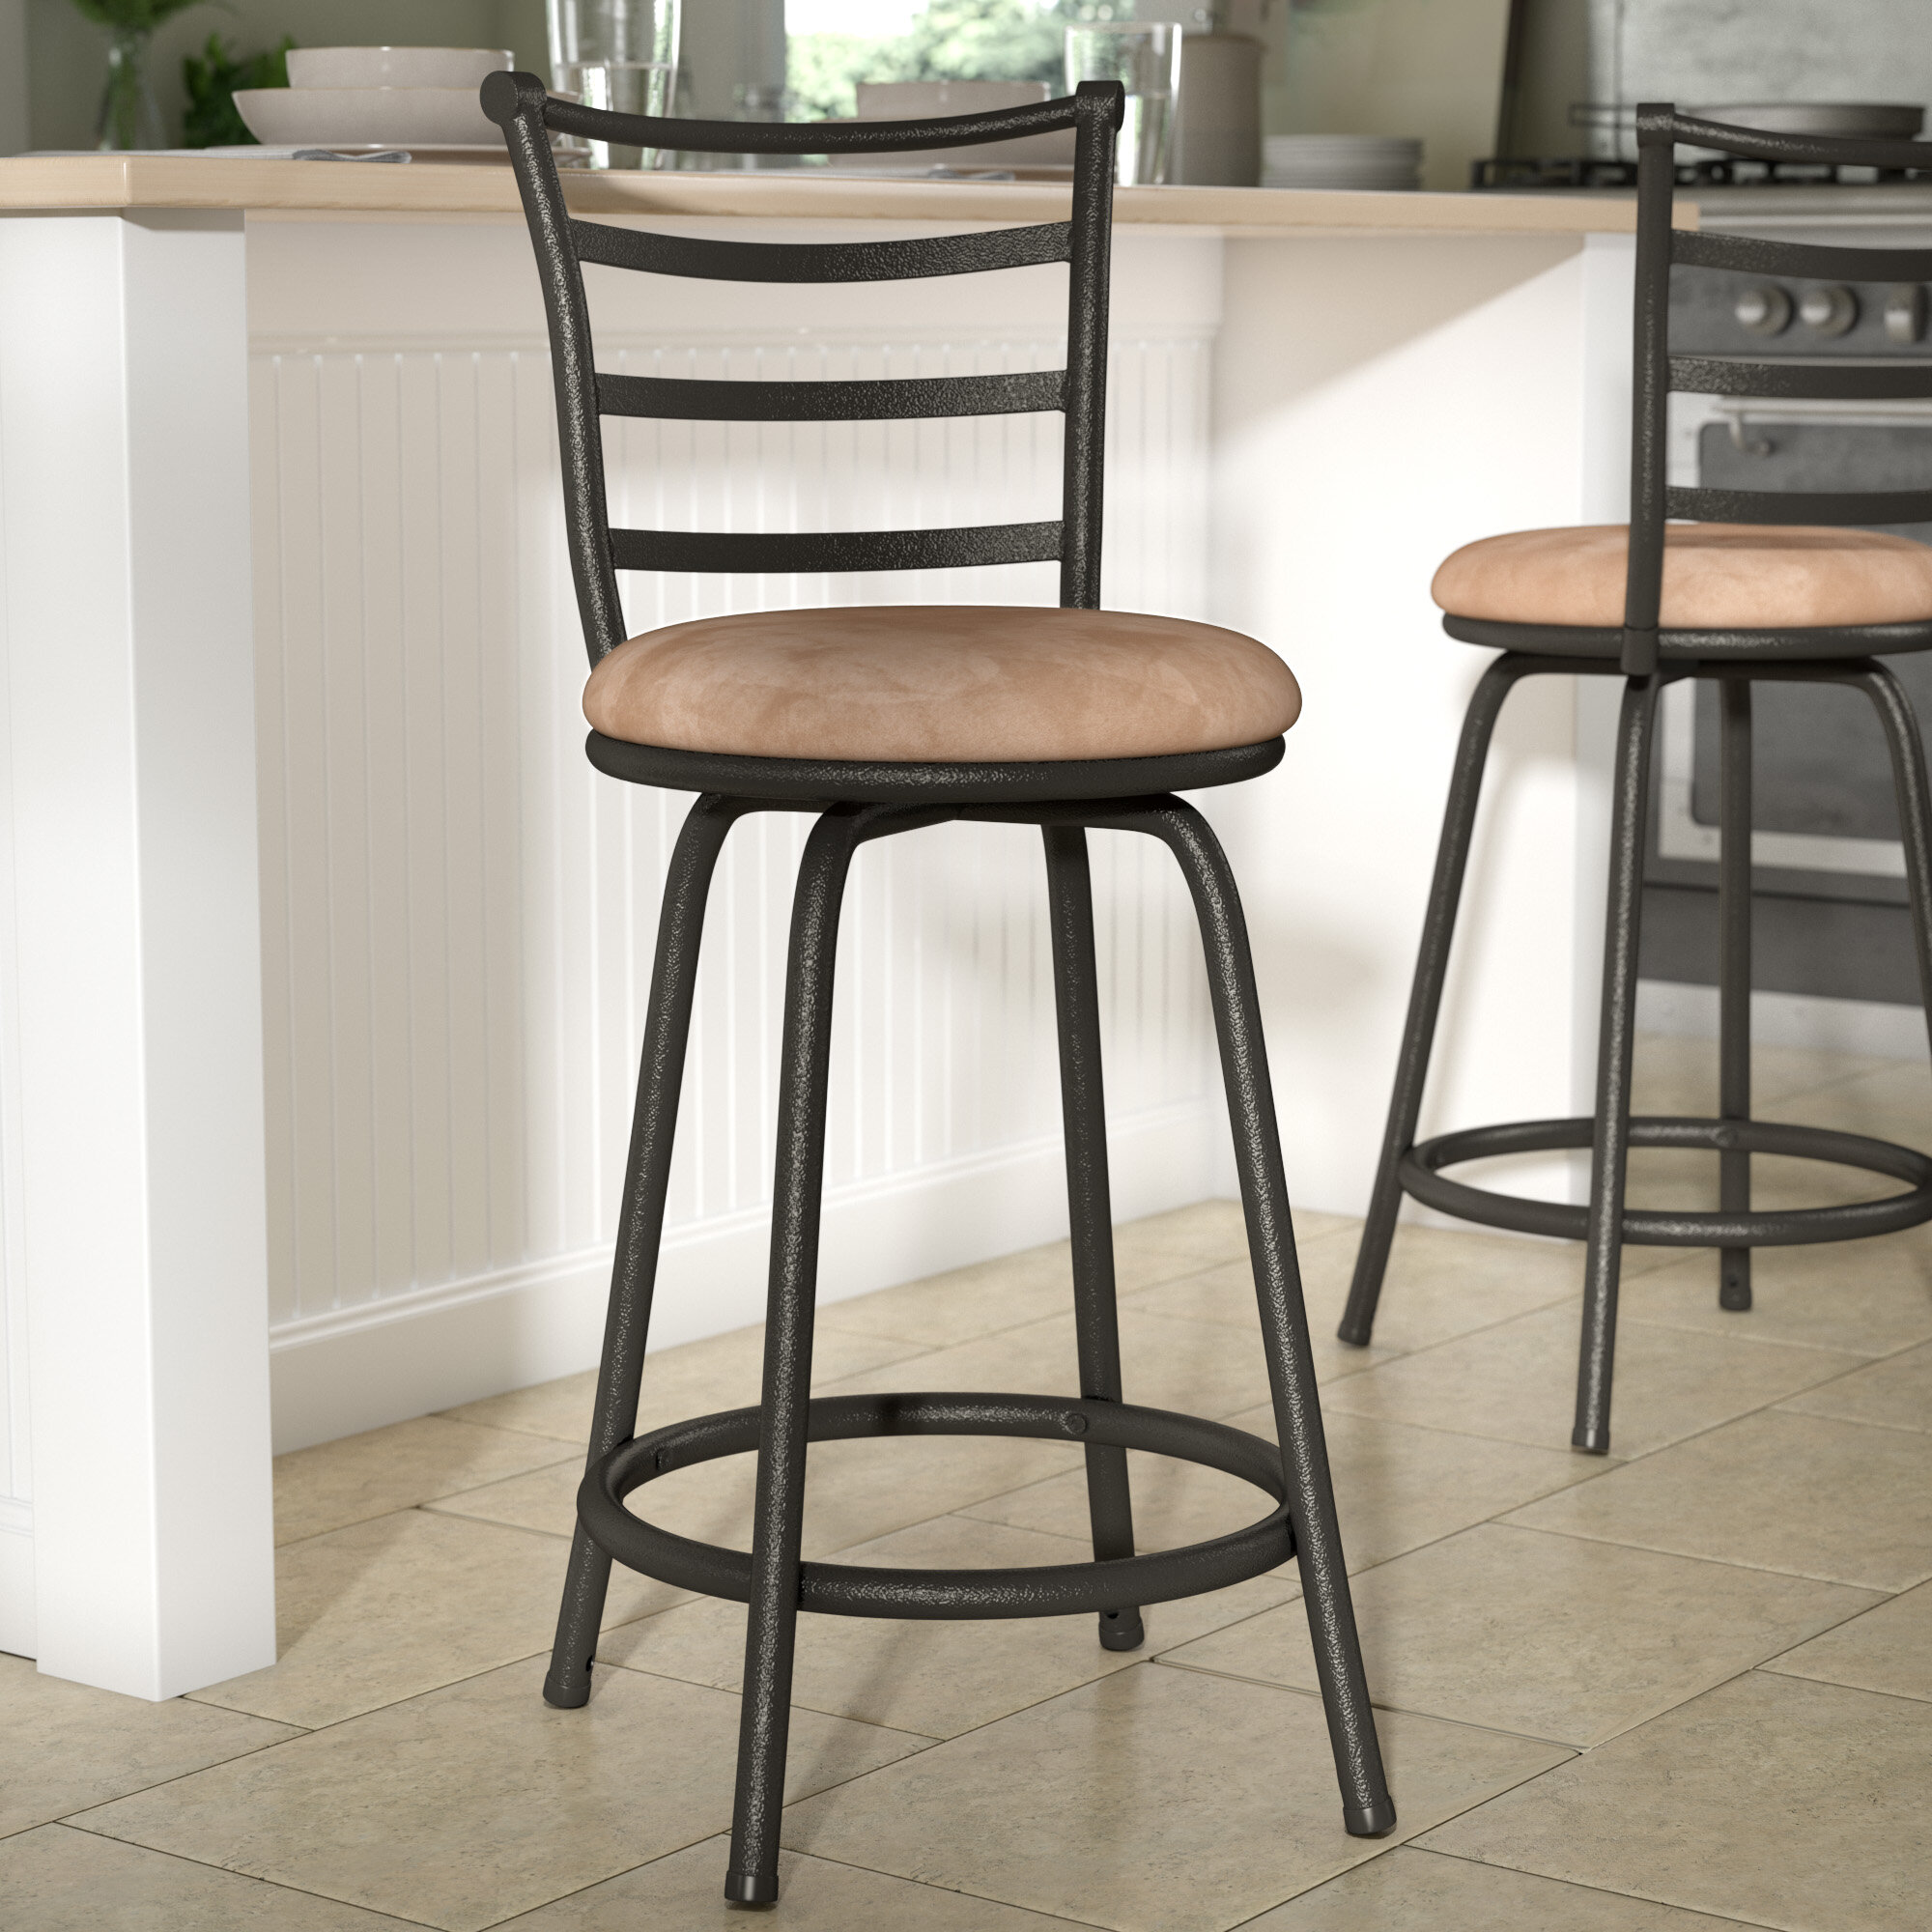 Zipcode Design Deandre Adjustable Height Swivel Bar Stool U0026 Reviews |  Wayfair